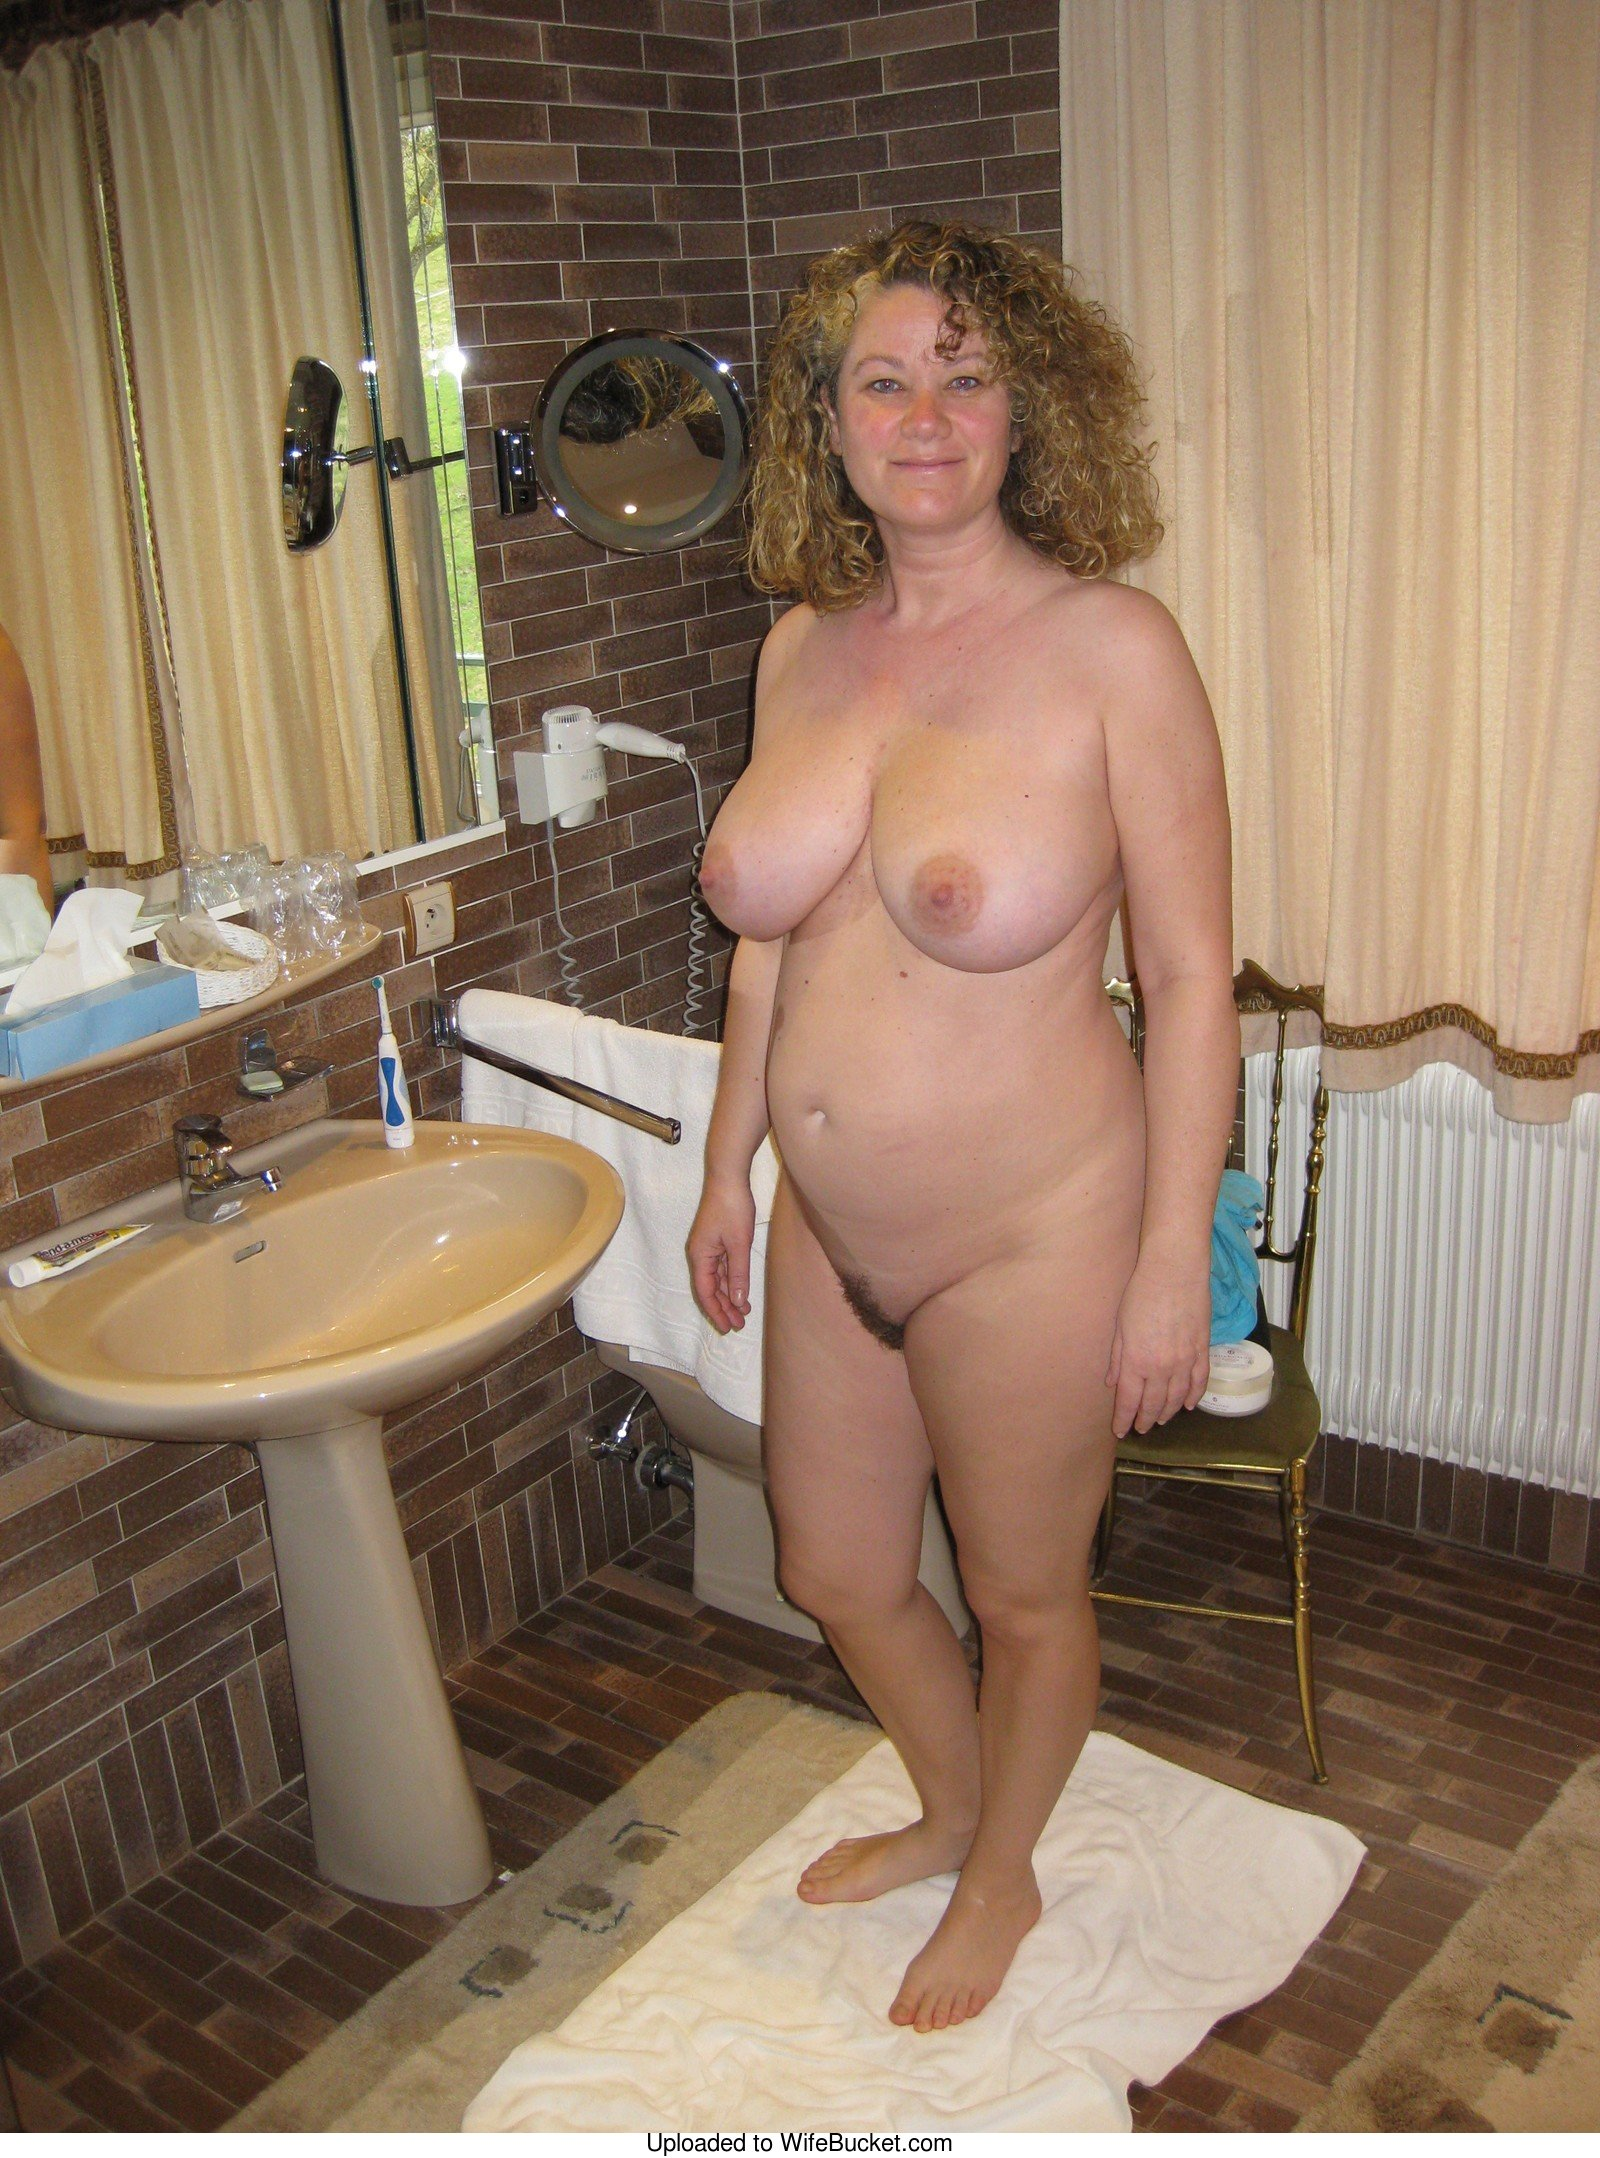 Amature Nudes sally from montana and 4 more naked amateur wives